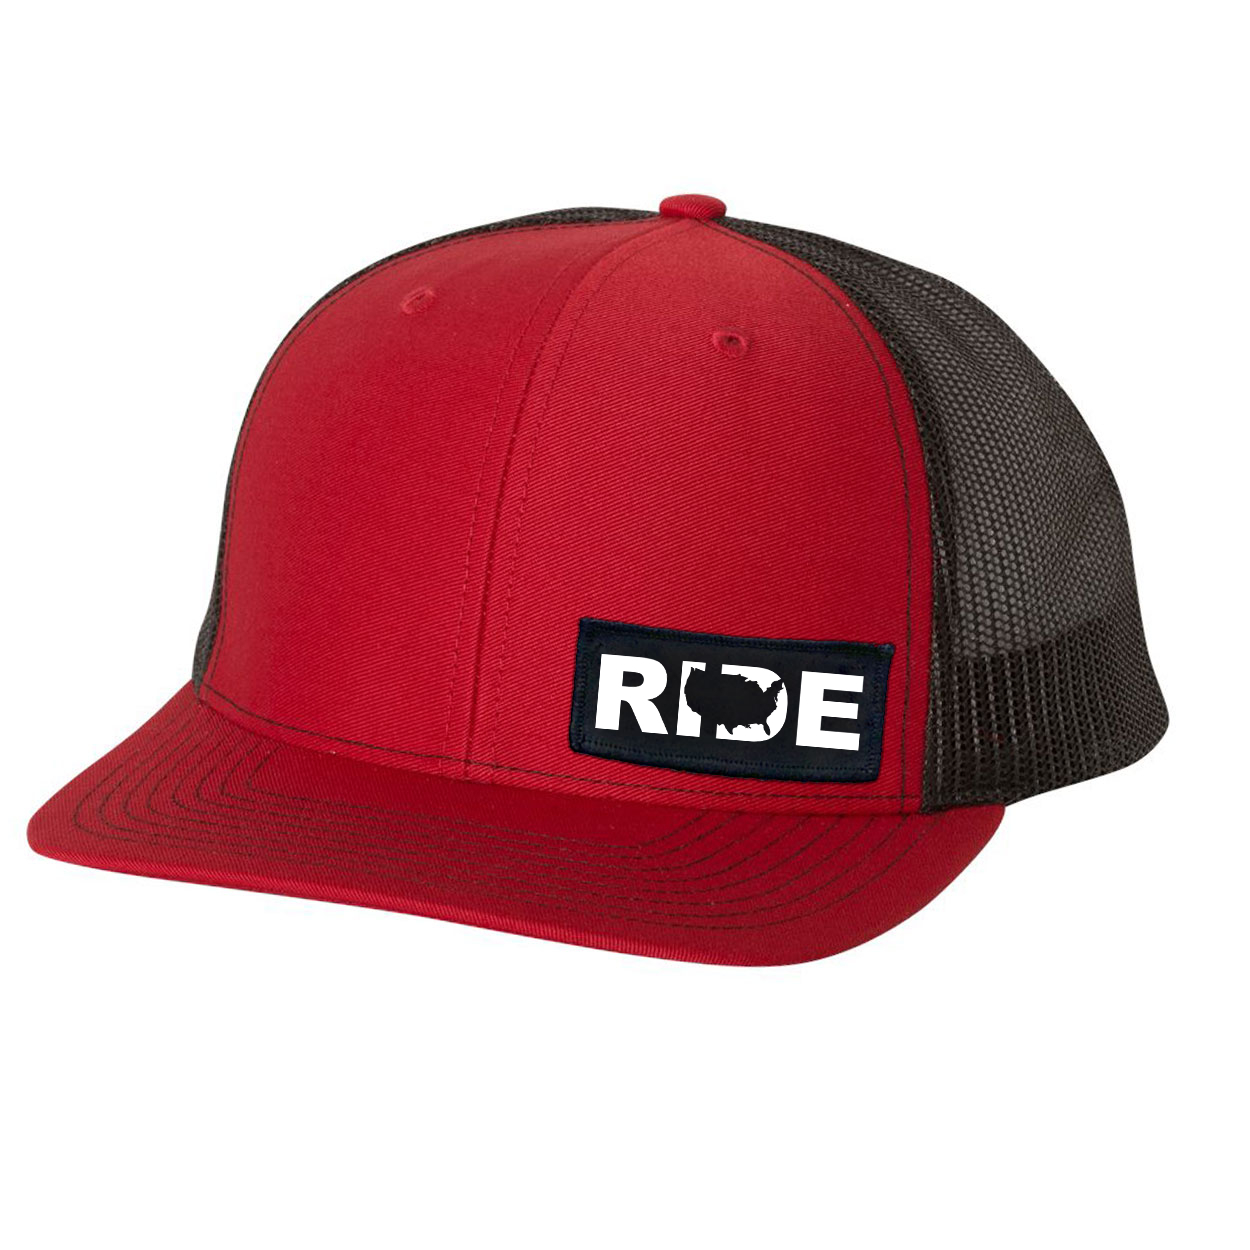 Ride United States Night Out Woven Patch Snapback Trucker Hat Red/Black (White Logo)